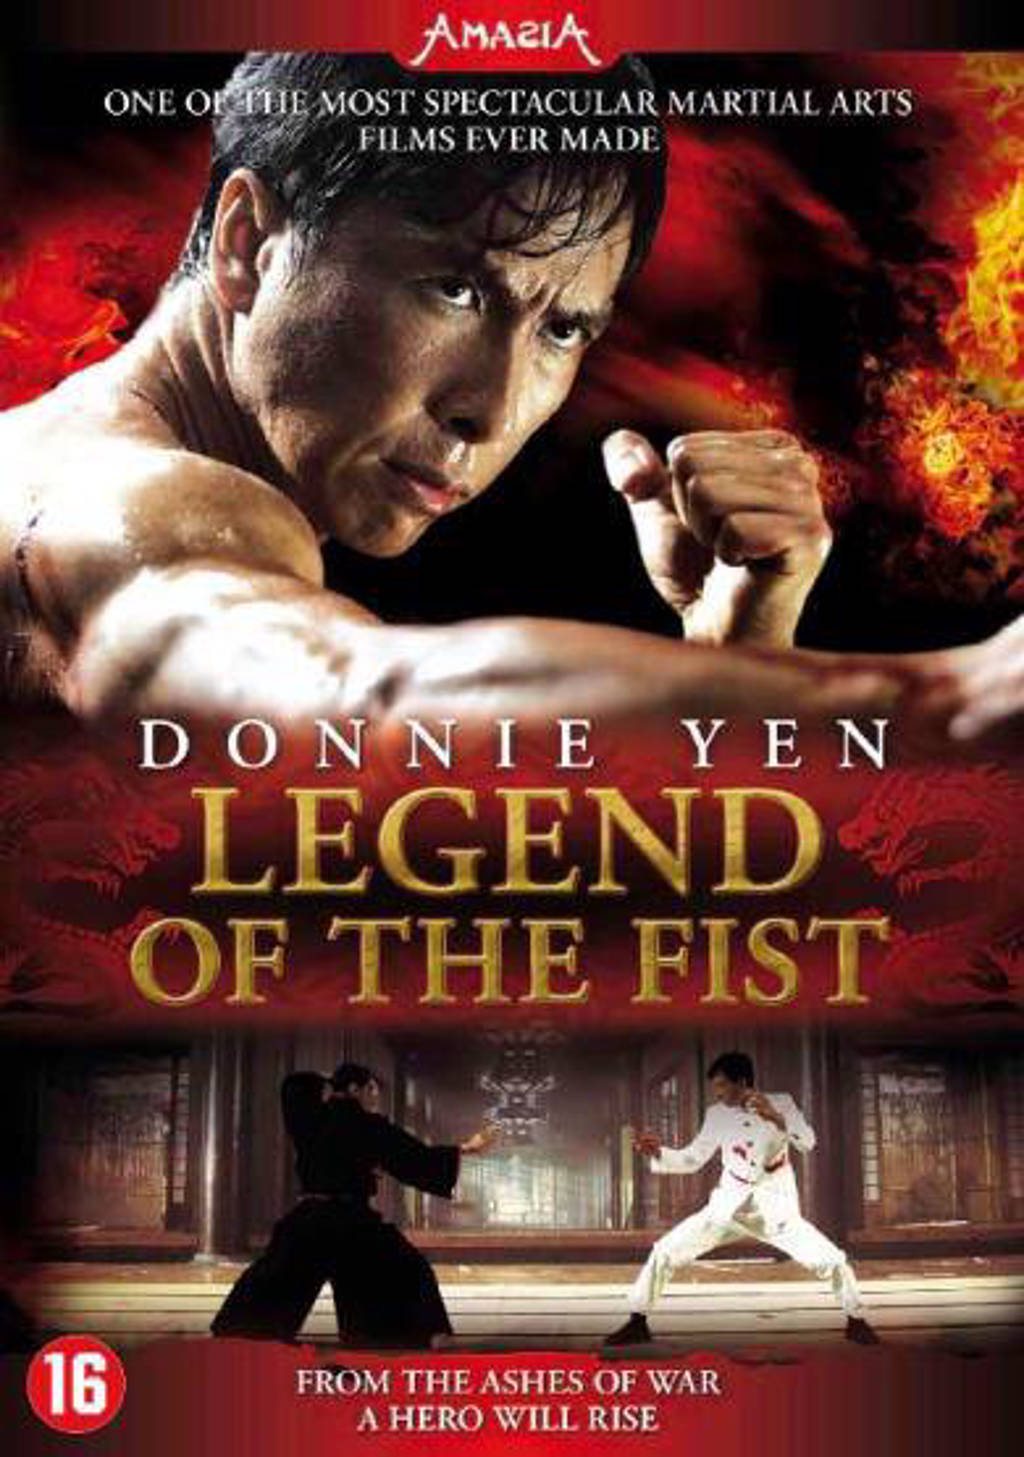 Legend of the fist (DVD)